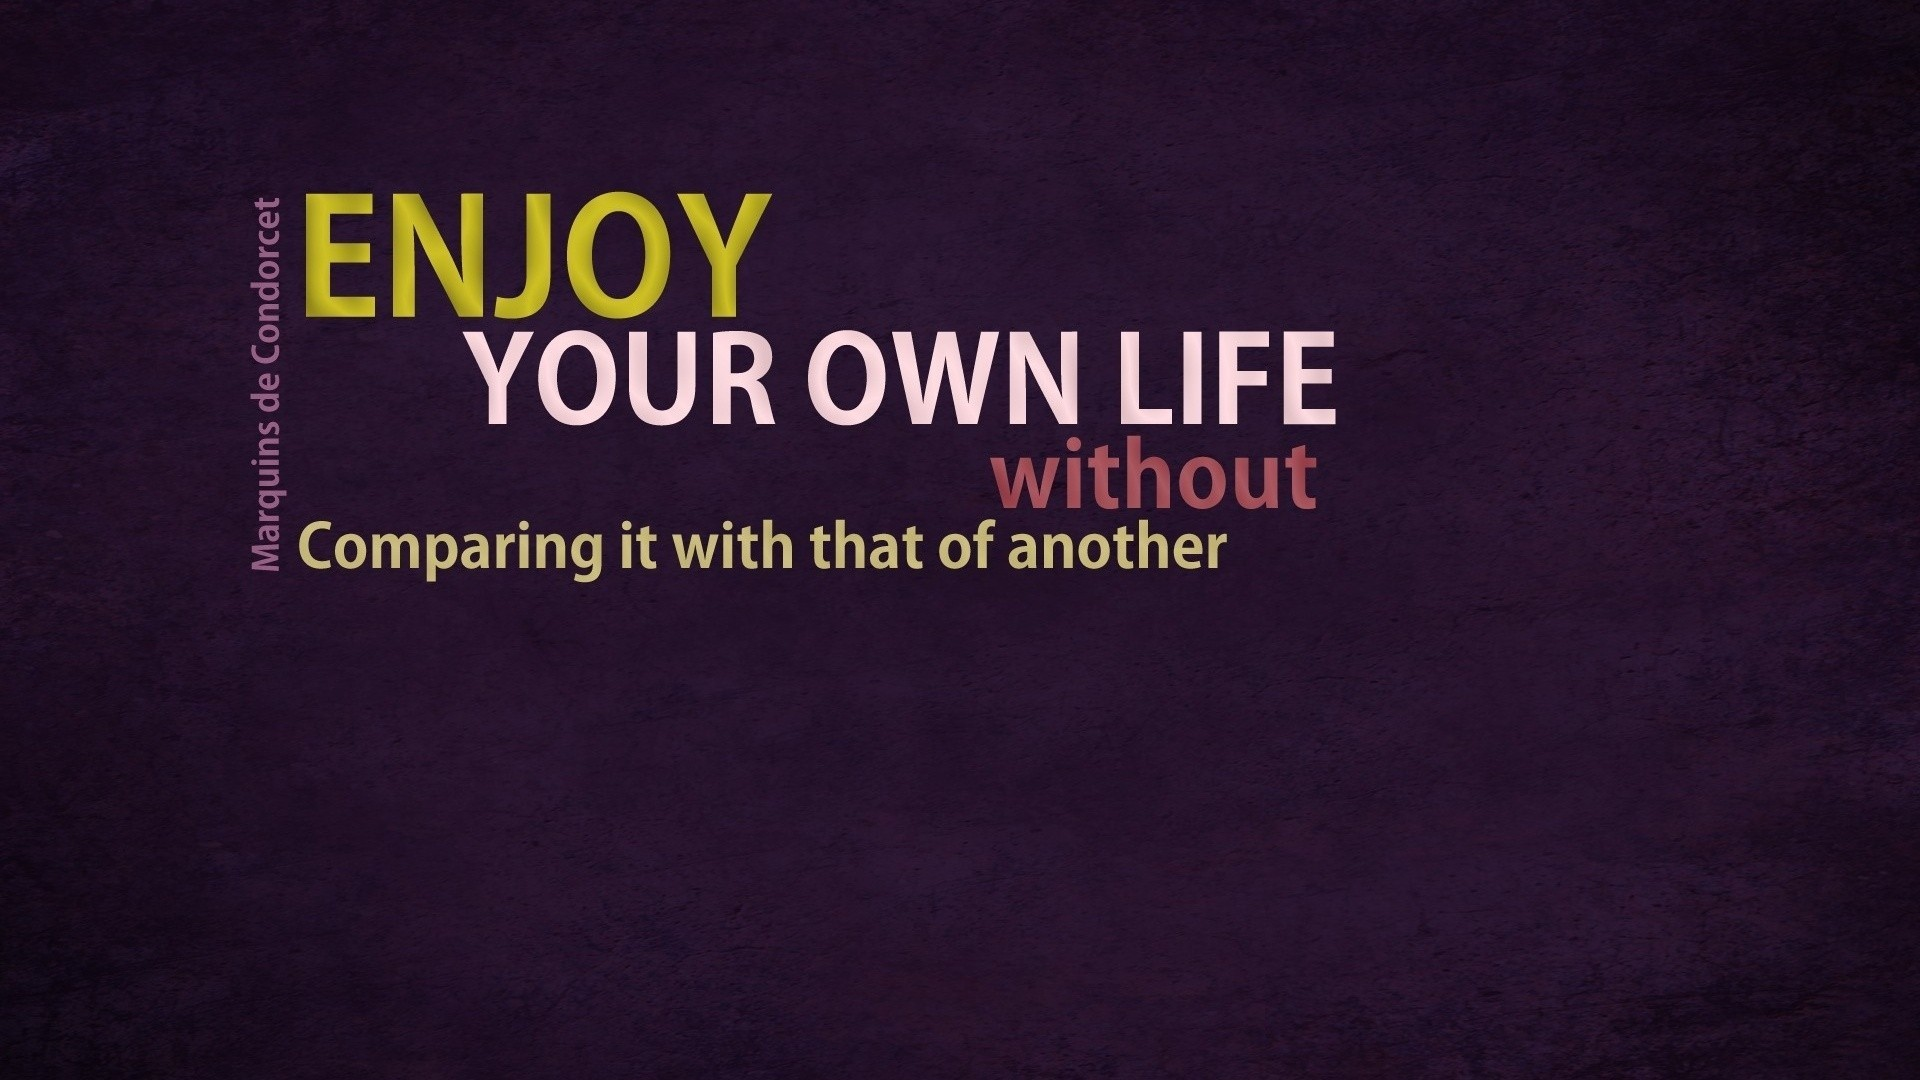 enjoy your own life